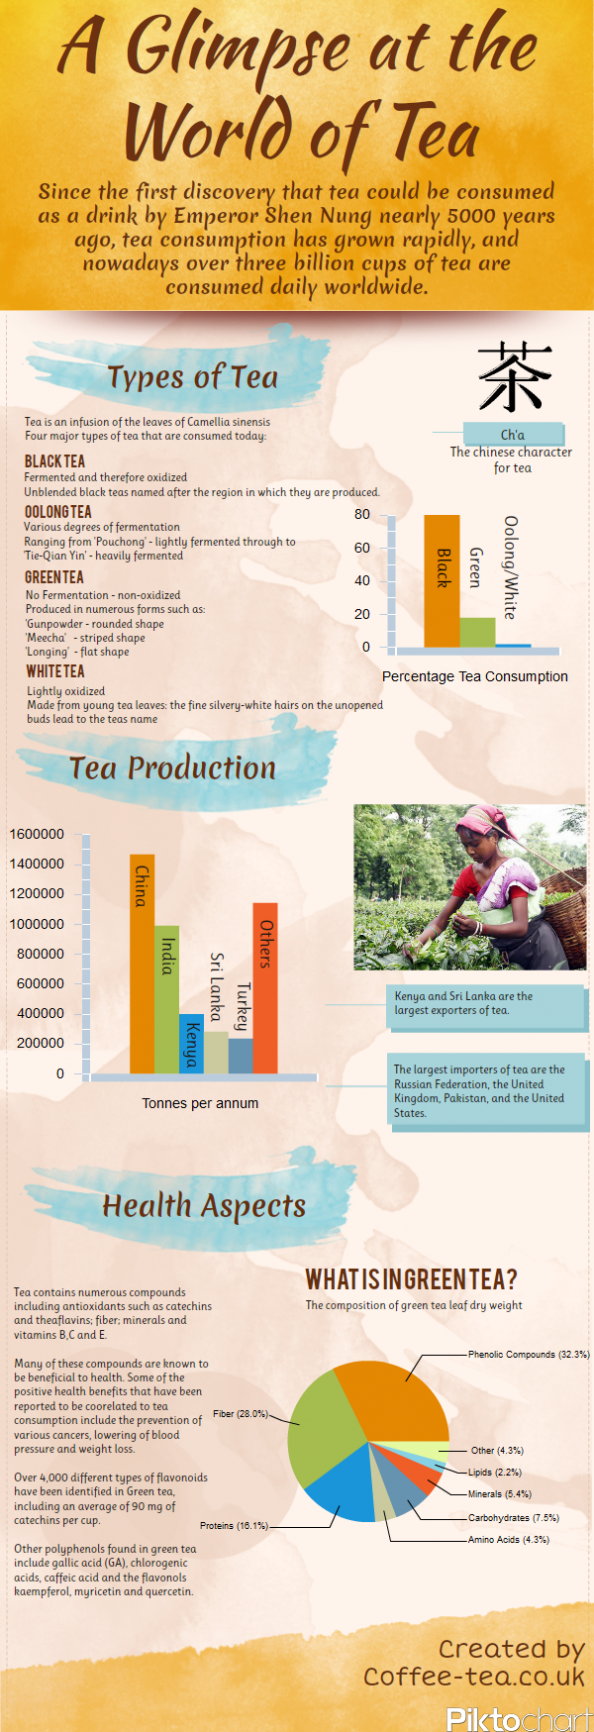 A Glimpse at the World of Tea Infographic